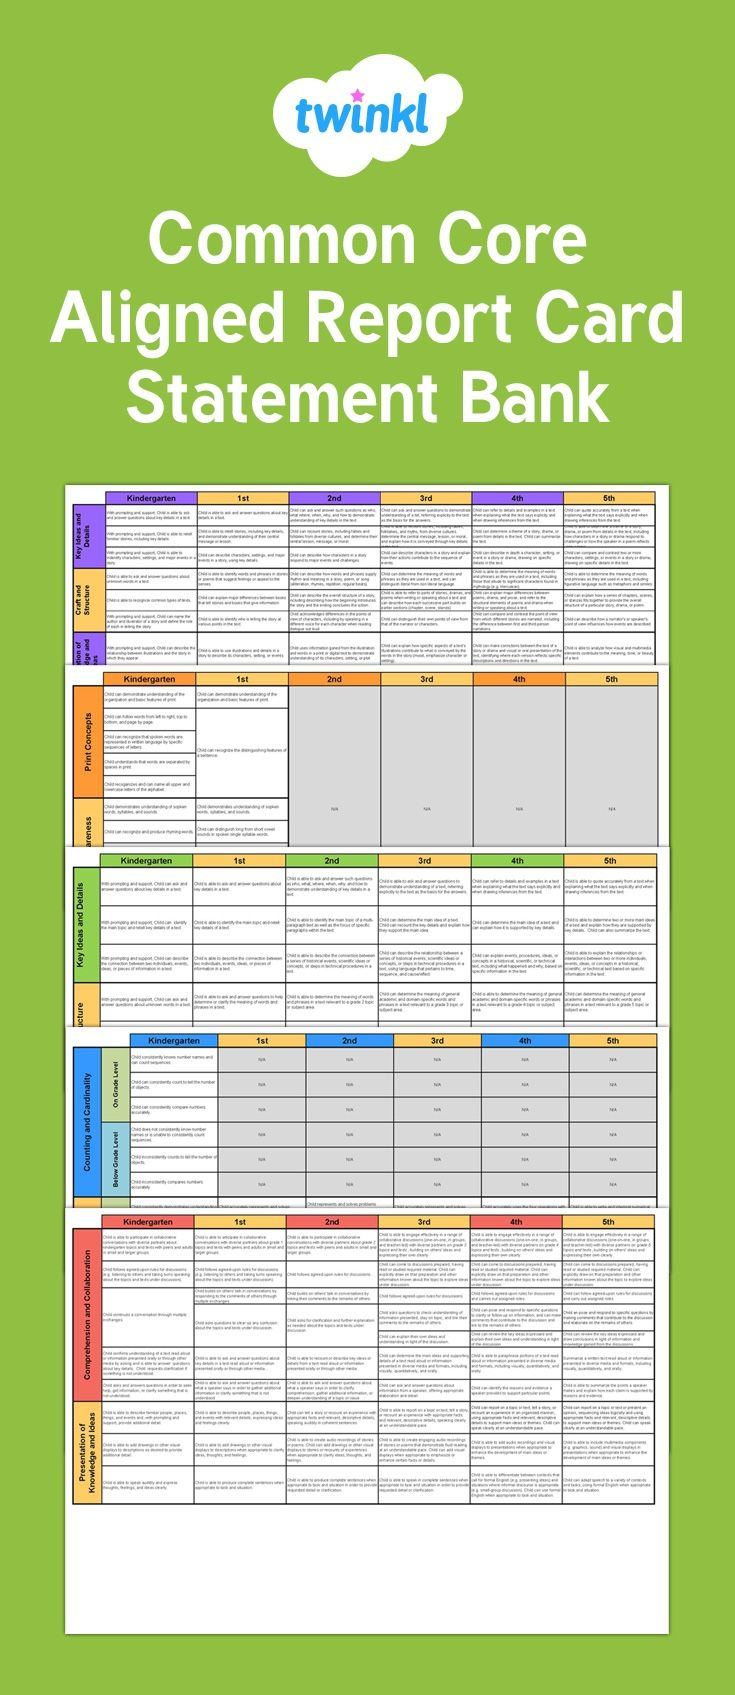 Easy to use spreadsheet with statements for report cards, aligned to the Common Core standards. Subjects covered are Math, ELA RL, ELA RI, ELA RF, Writing, Speaking and Listening and Science, and also included are a wide range of comments regarding the child's behavior, relationships, personality etc.